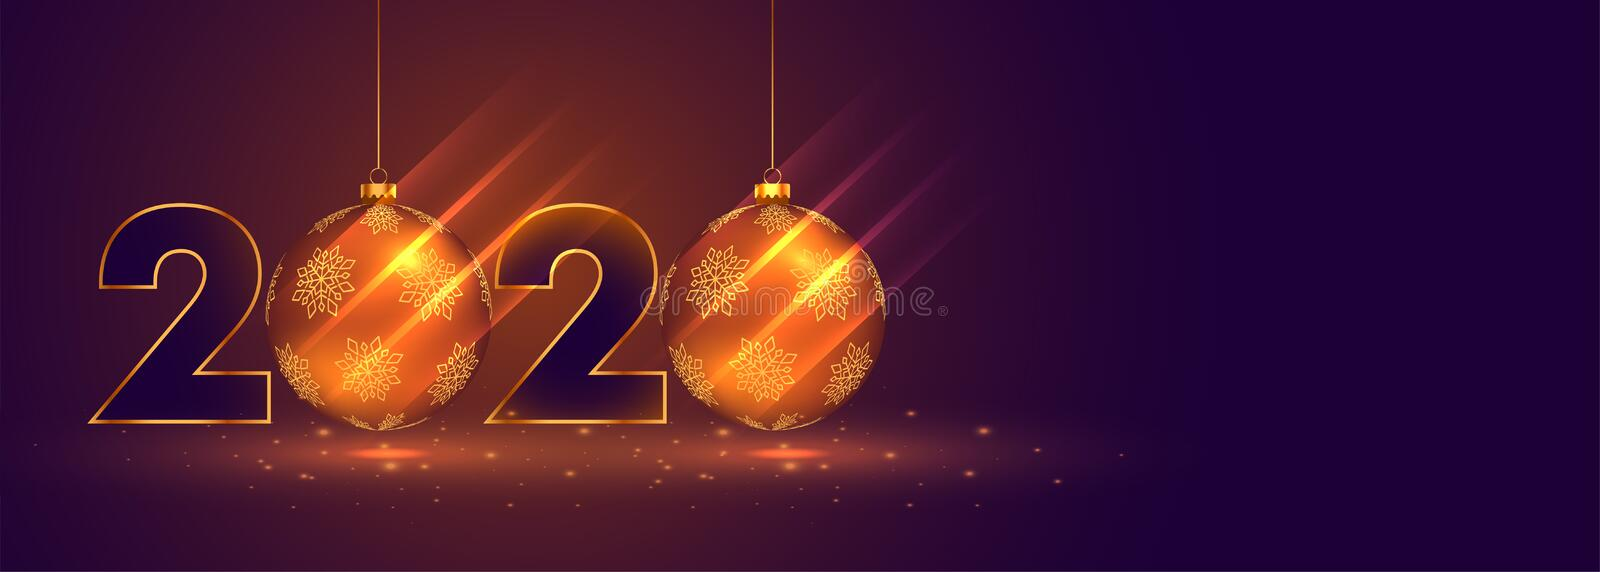 New year 2020 celebration banner with christmas balls royalty free illustration